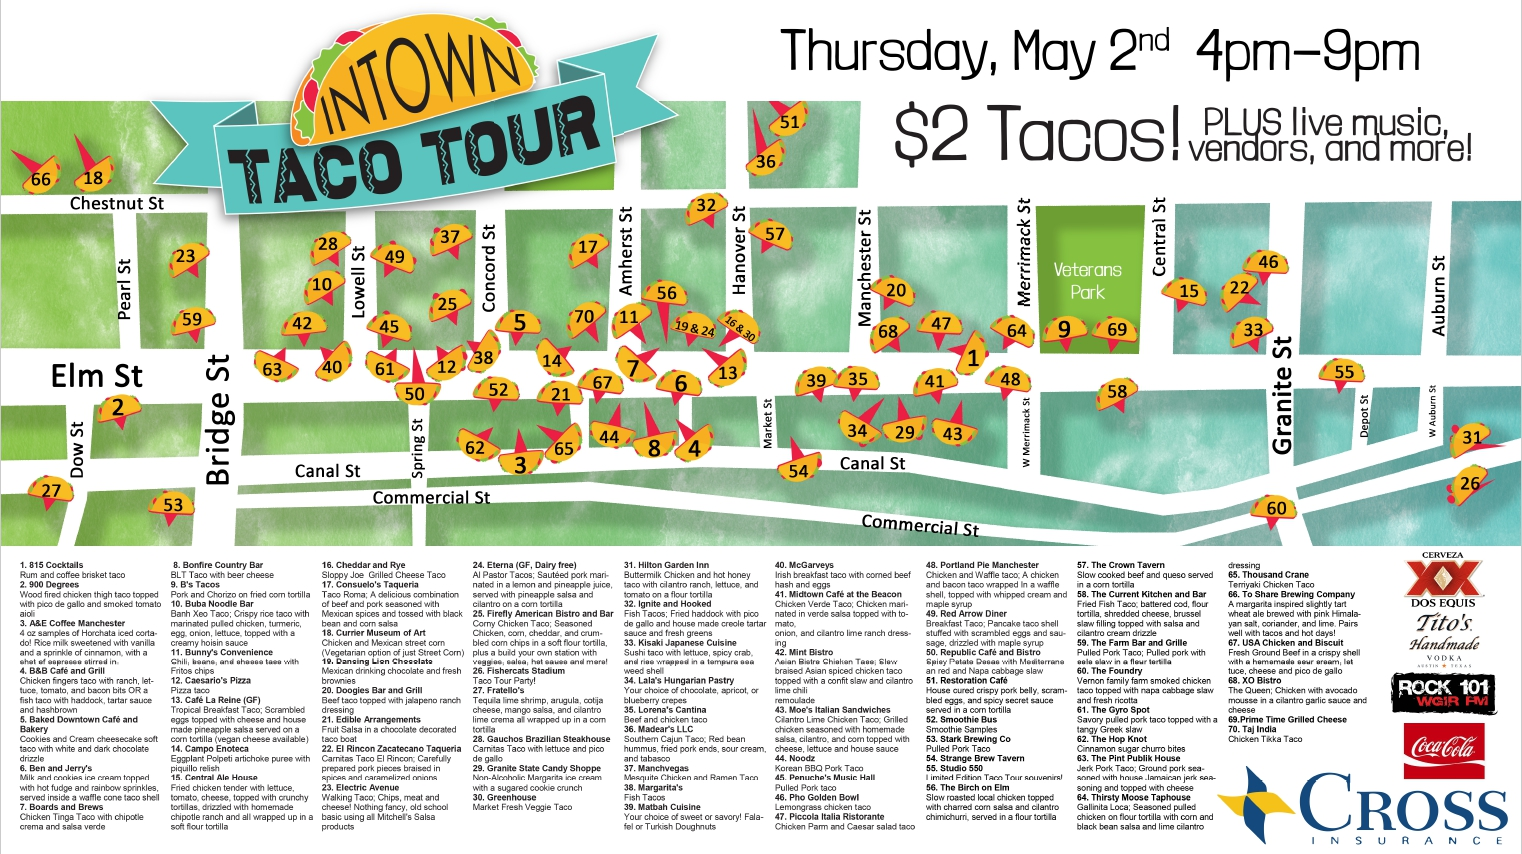 A map of the event, courtesy of the event organizer. That's a LOT of different tacos!